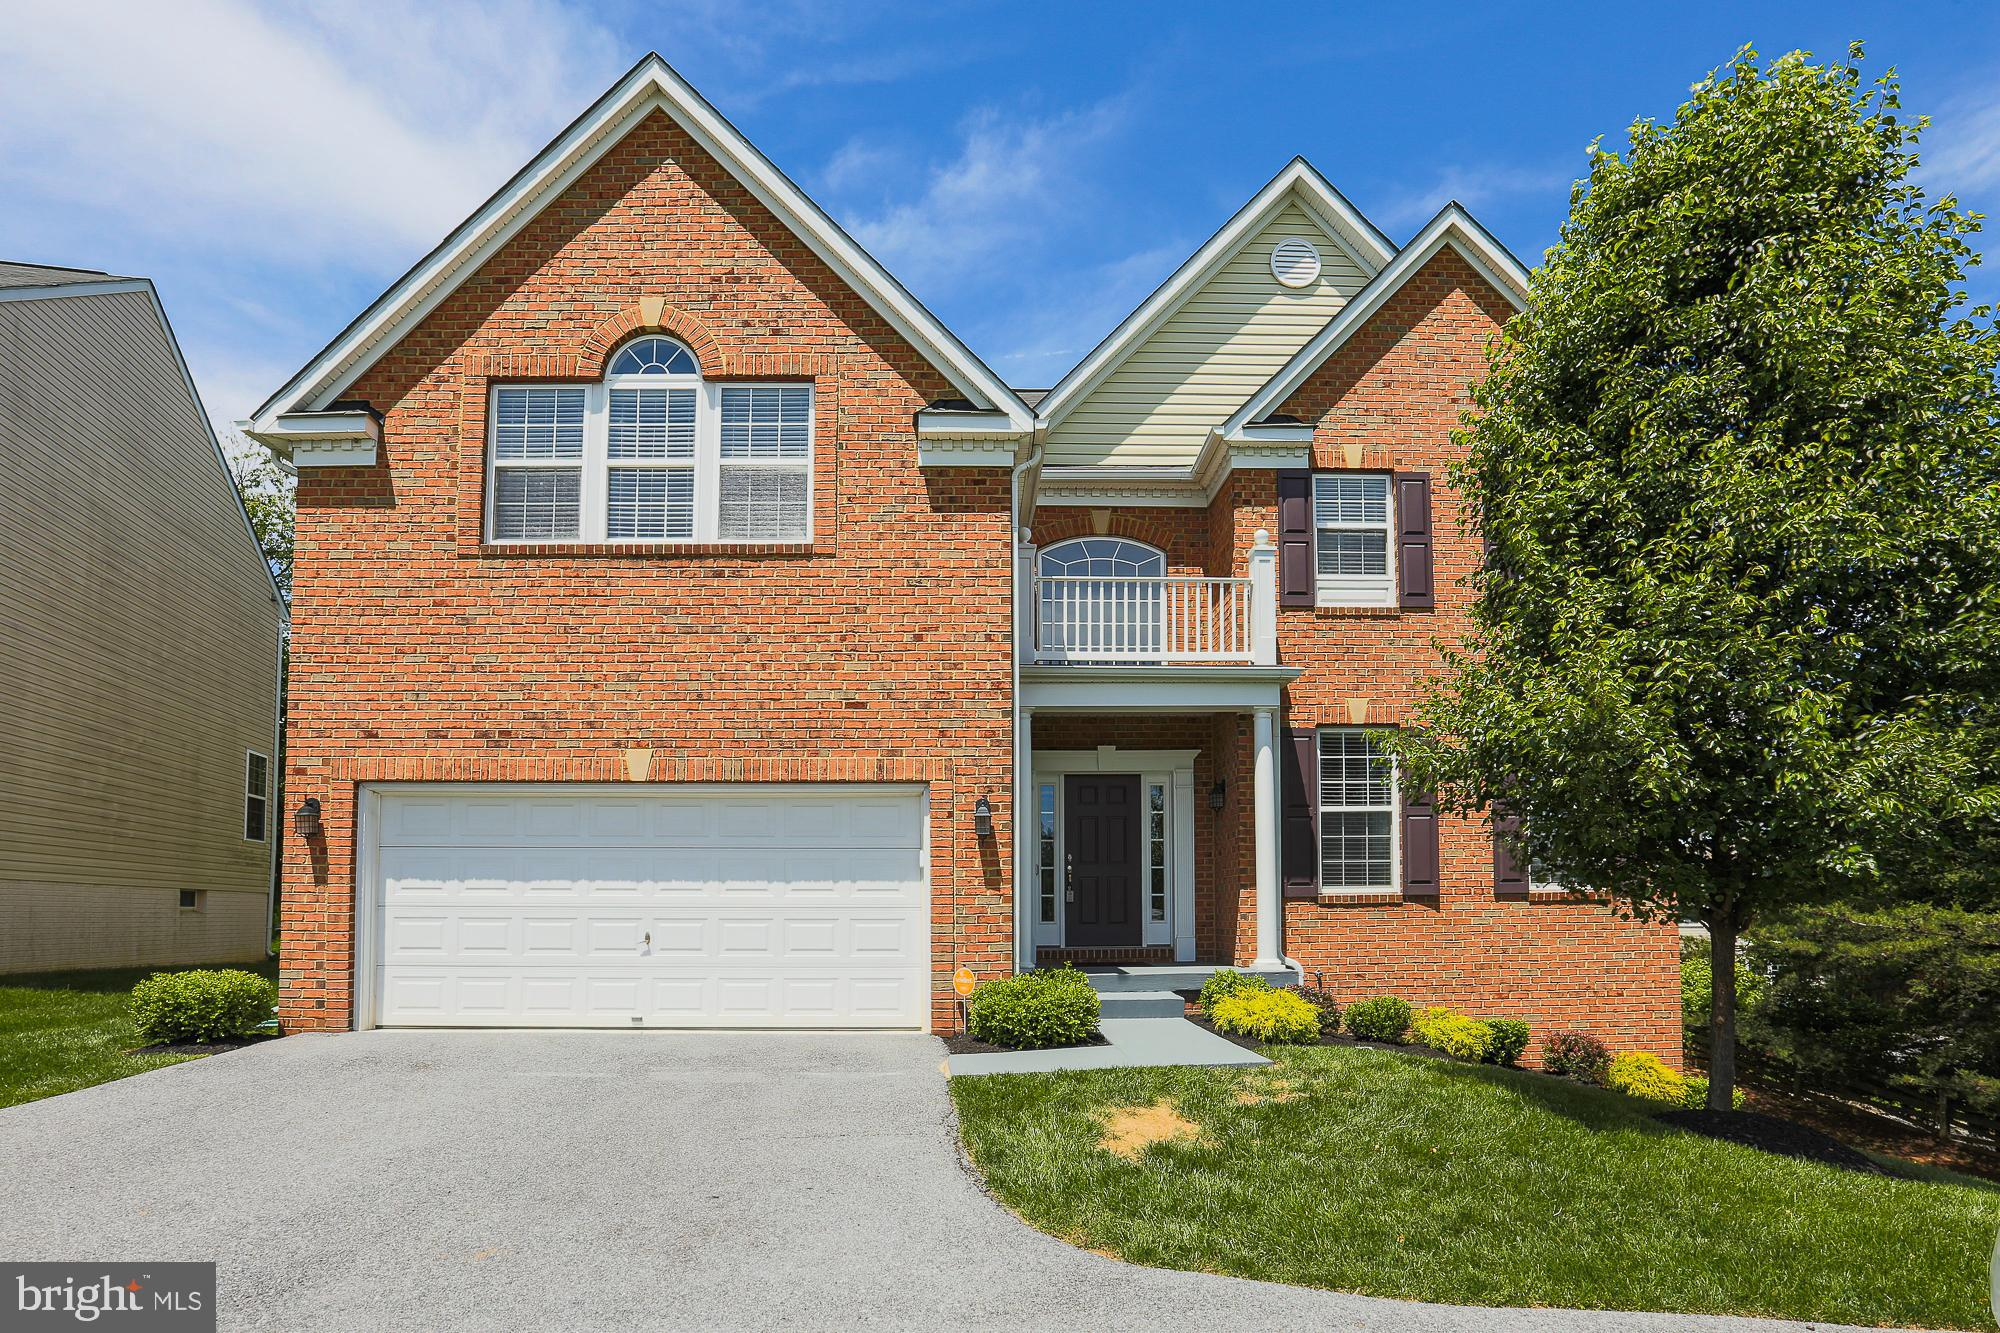 4114 KIWI COURT, RANDALLSTOWN, MD 21133